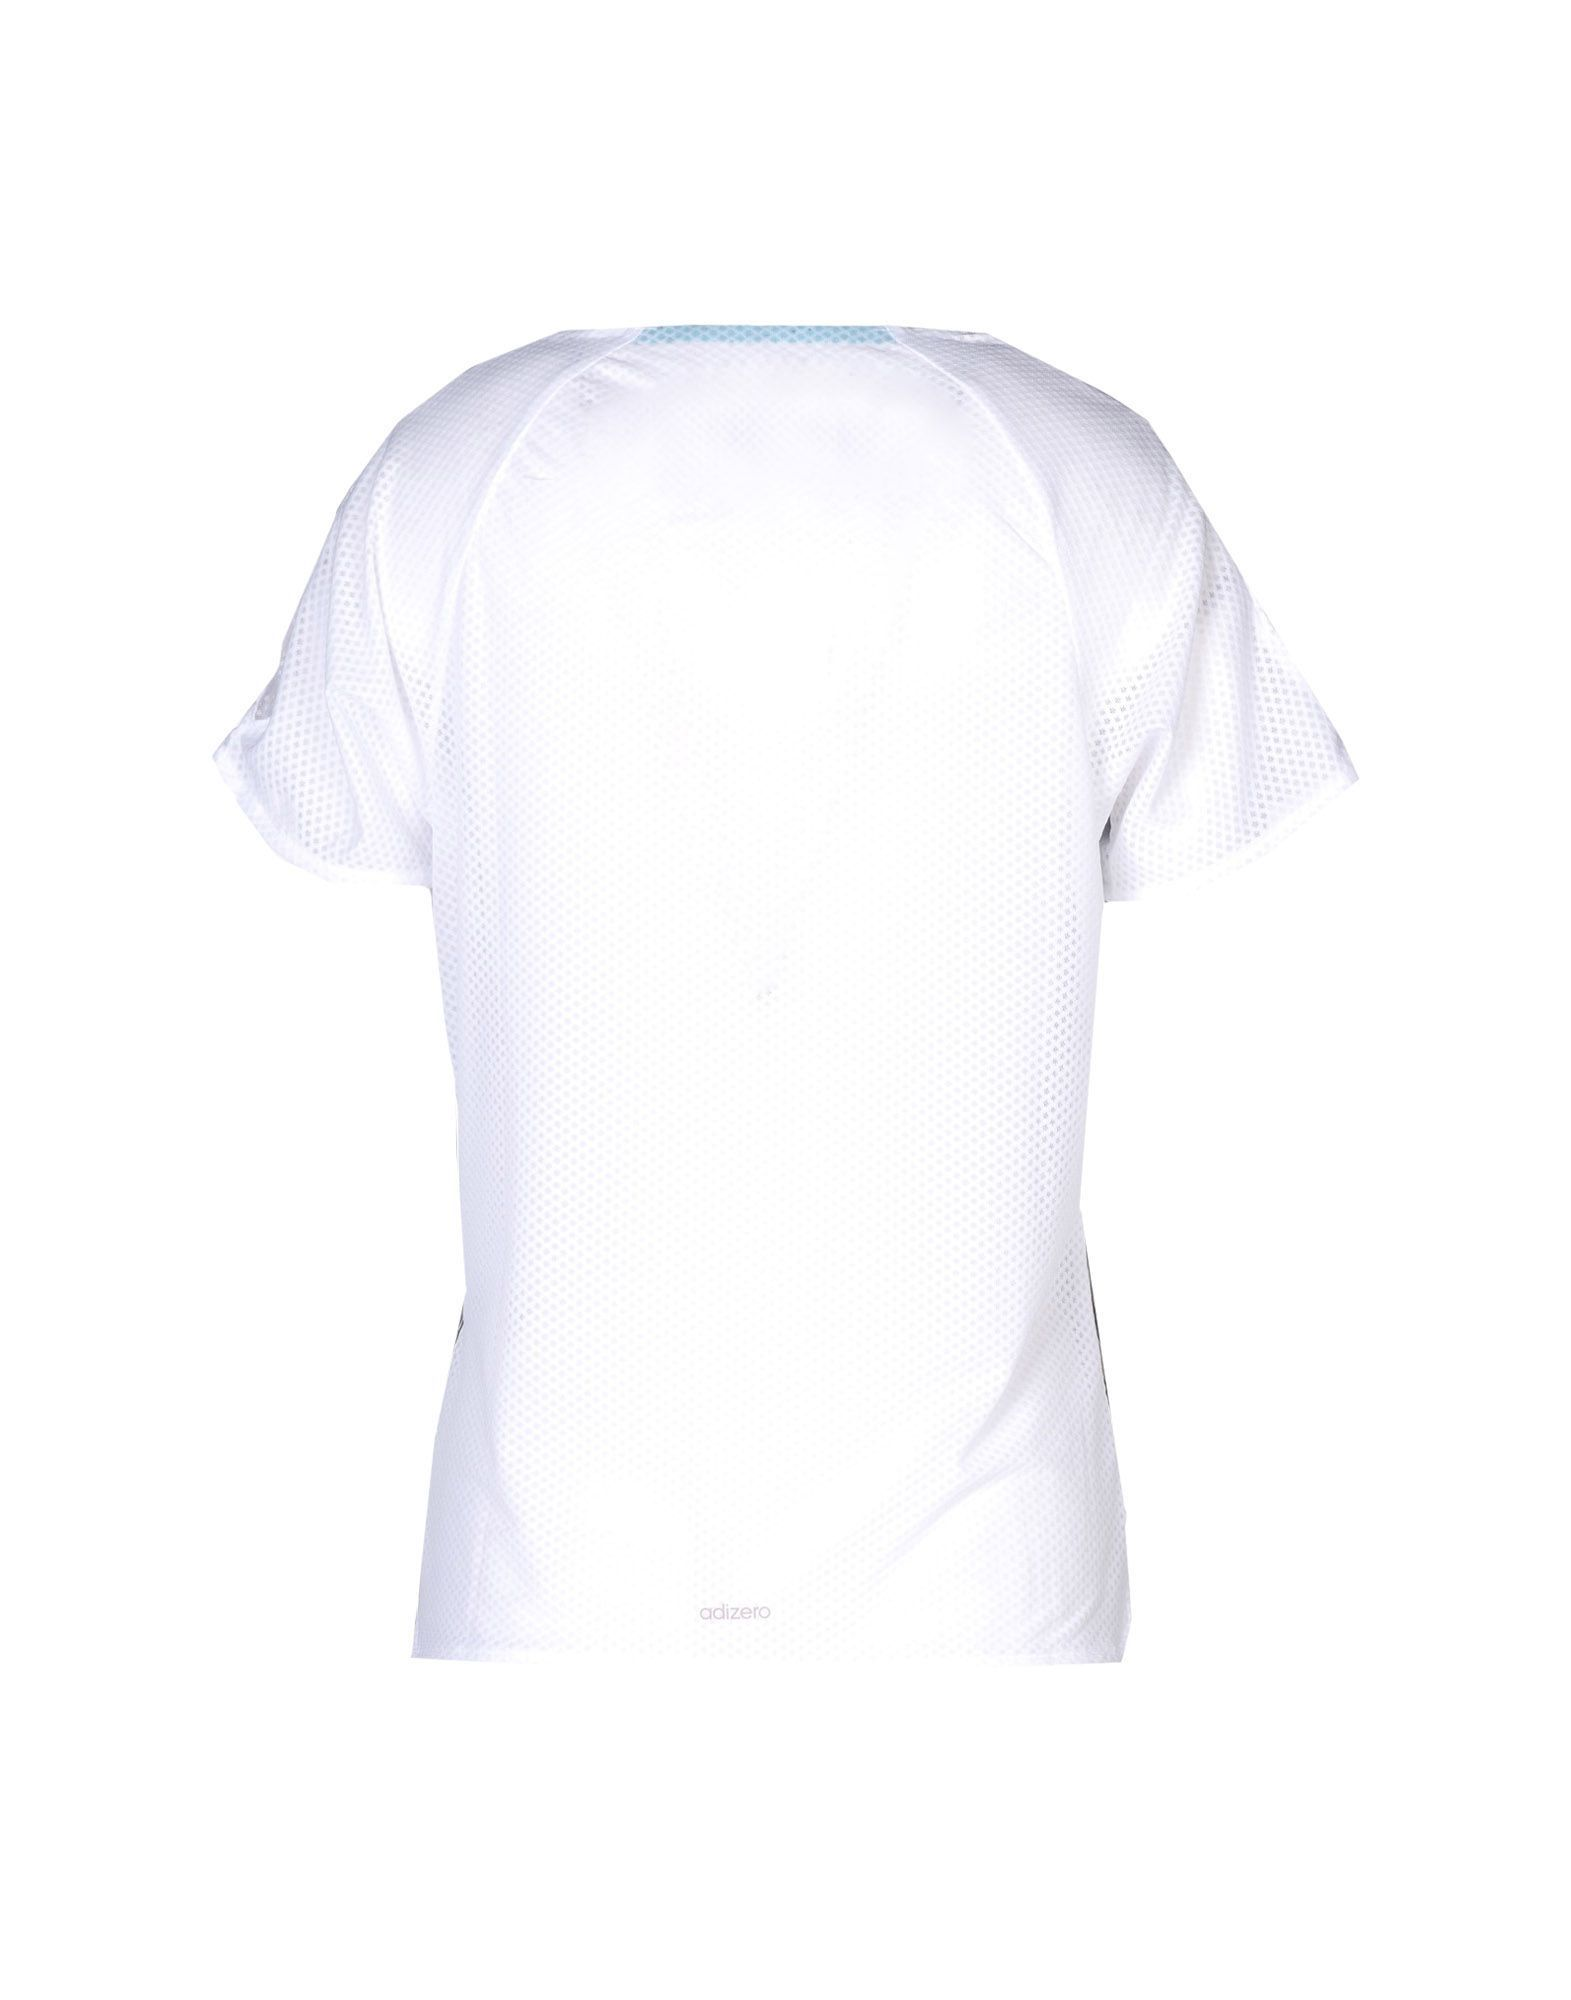 Adidas White Polyester T-shirts